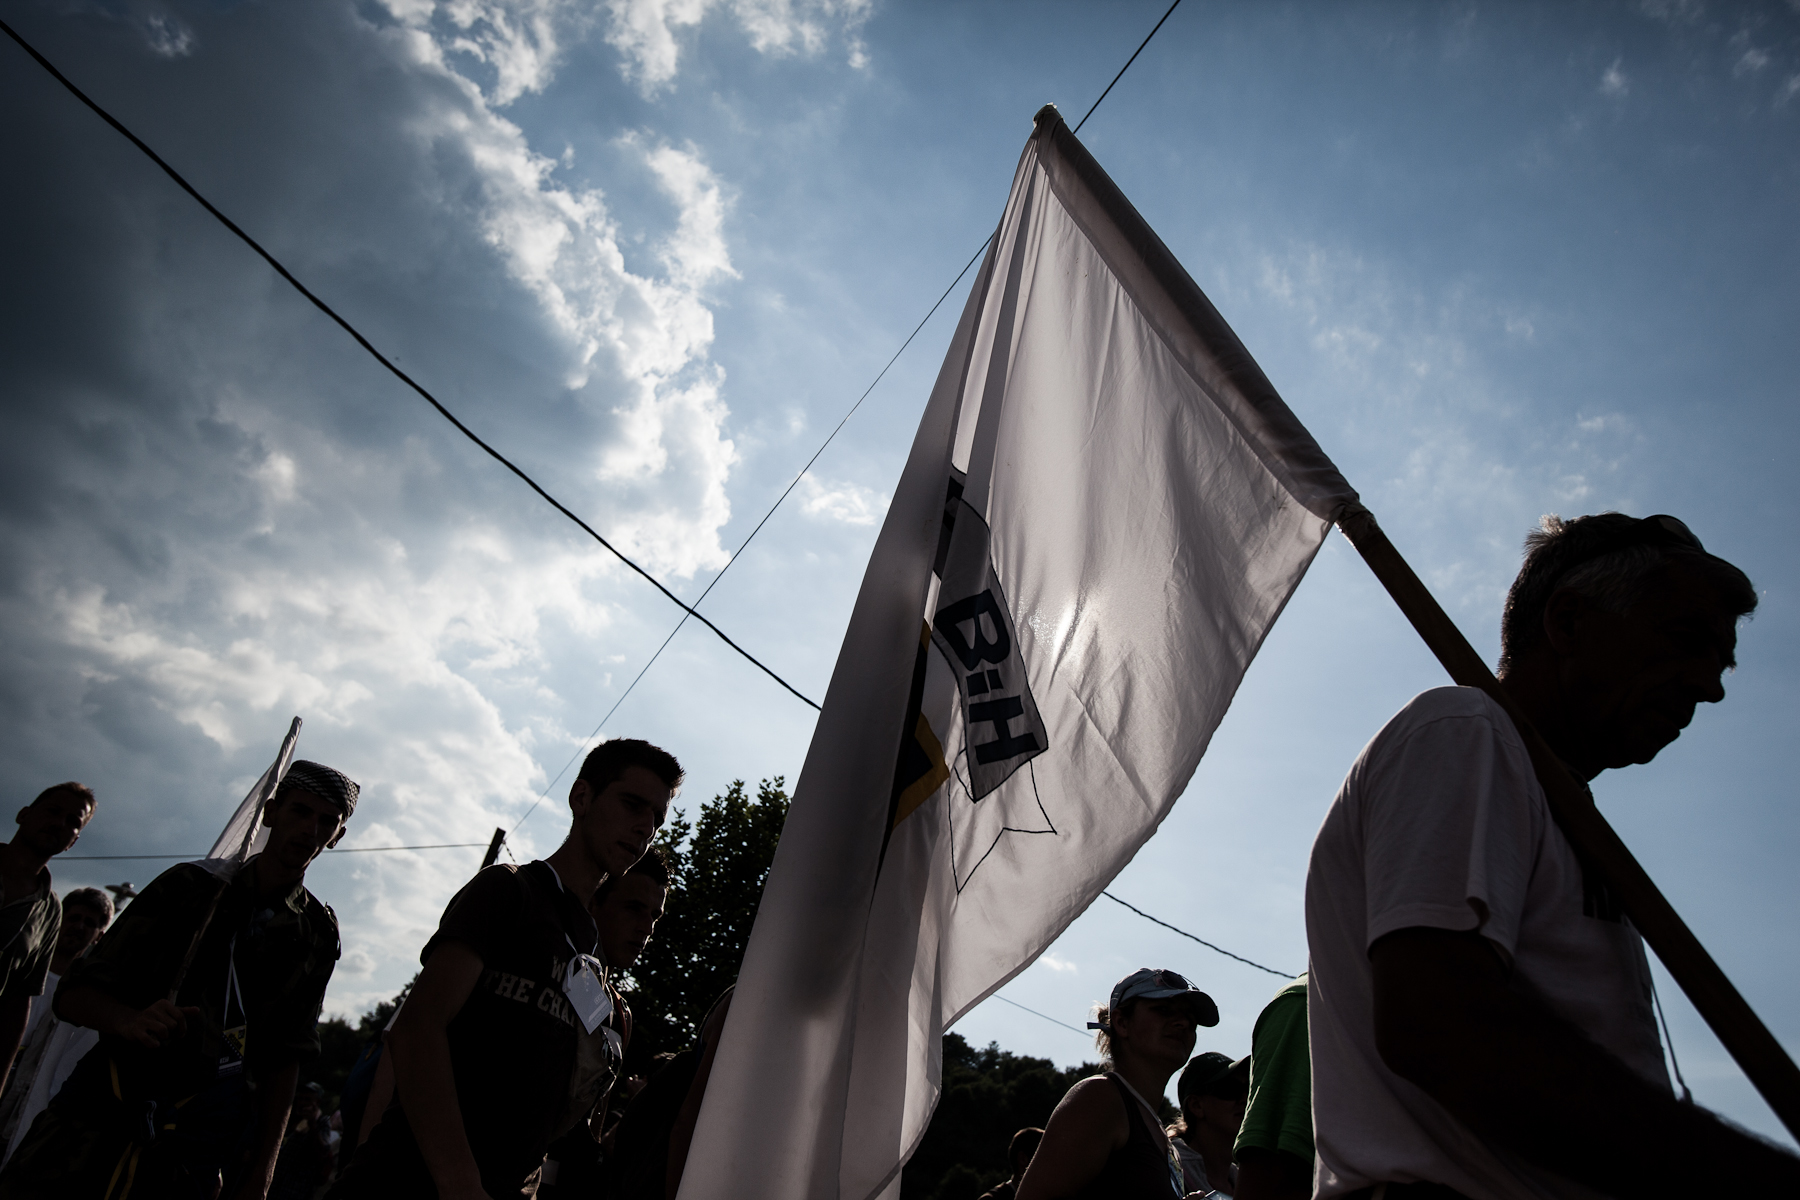 Hikers on an annual March of Peace arrive to the Potocari memorial center in Srebrenica, July 10, 2010.